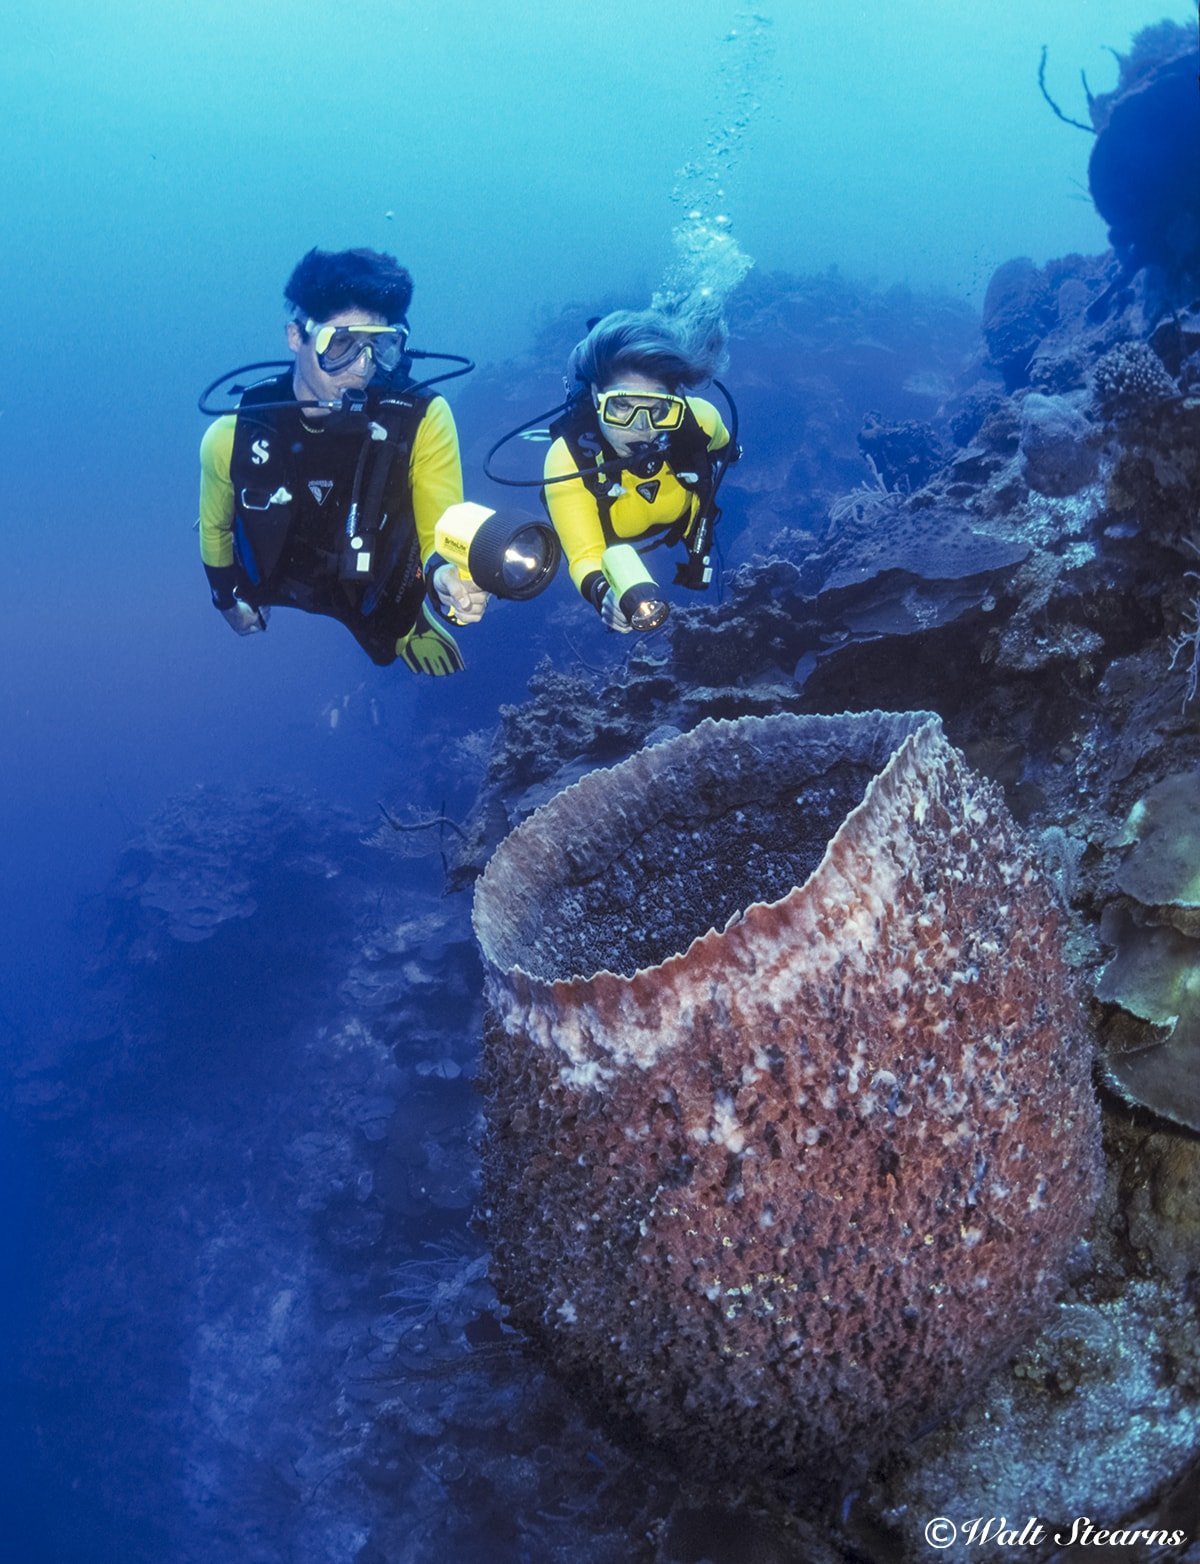 If you come across a large barrel sponge, pause to take a look inside, where you might find anything from a tiny shrimp to a resting moray eel or lobster.